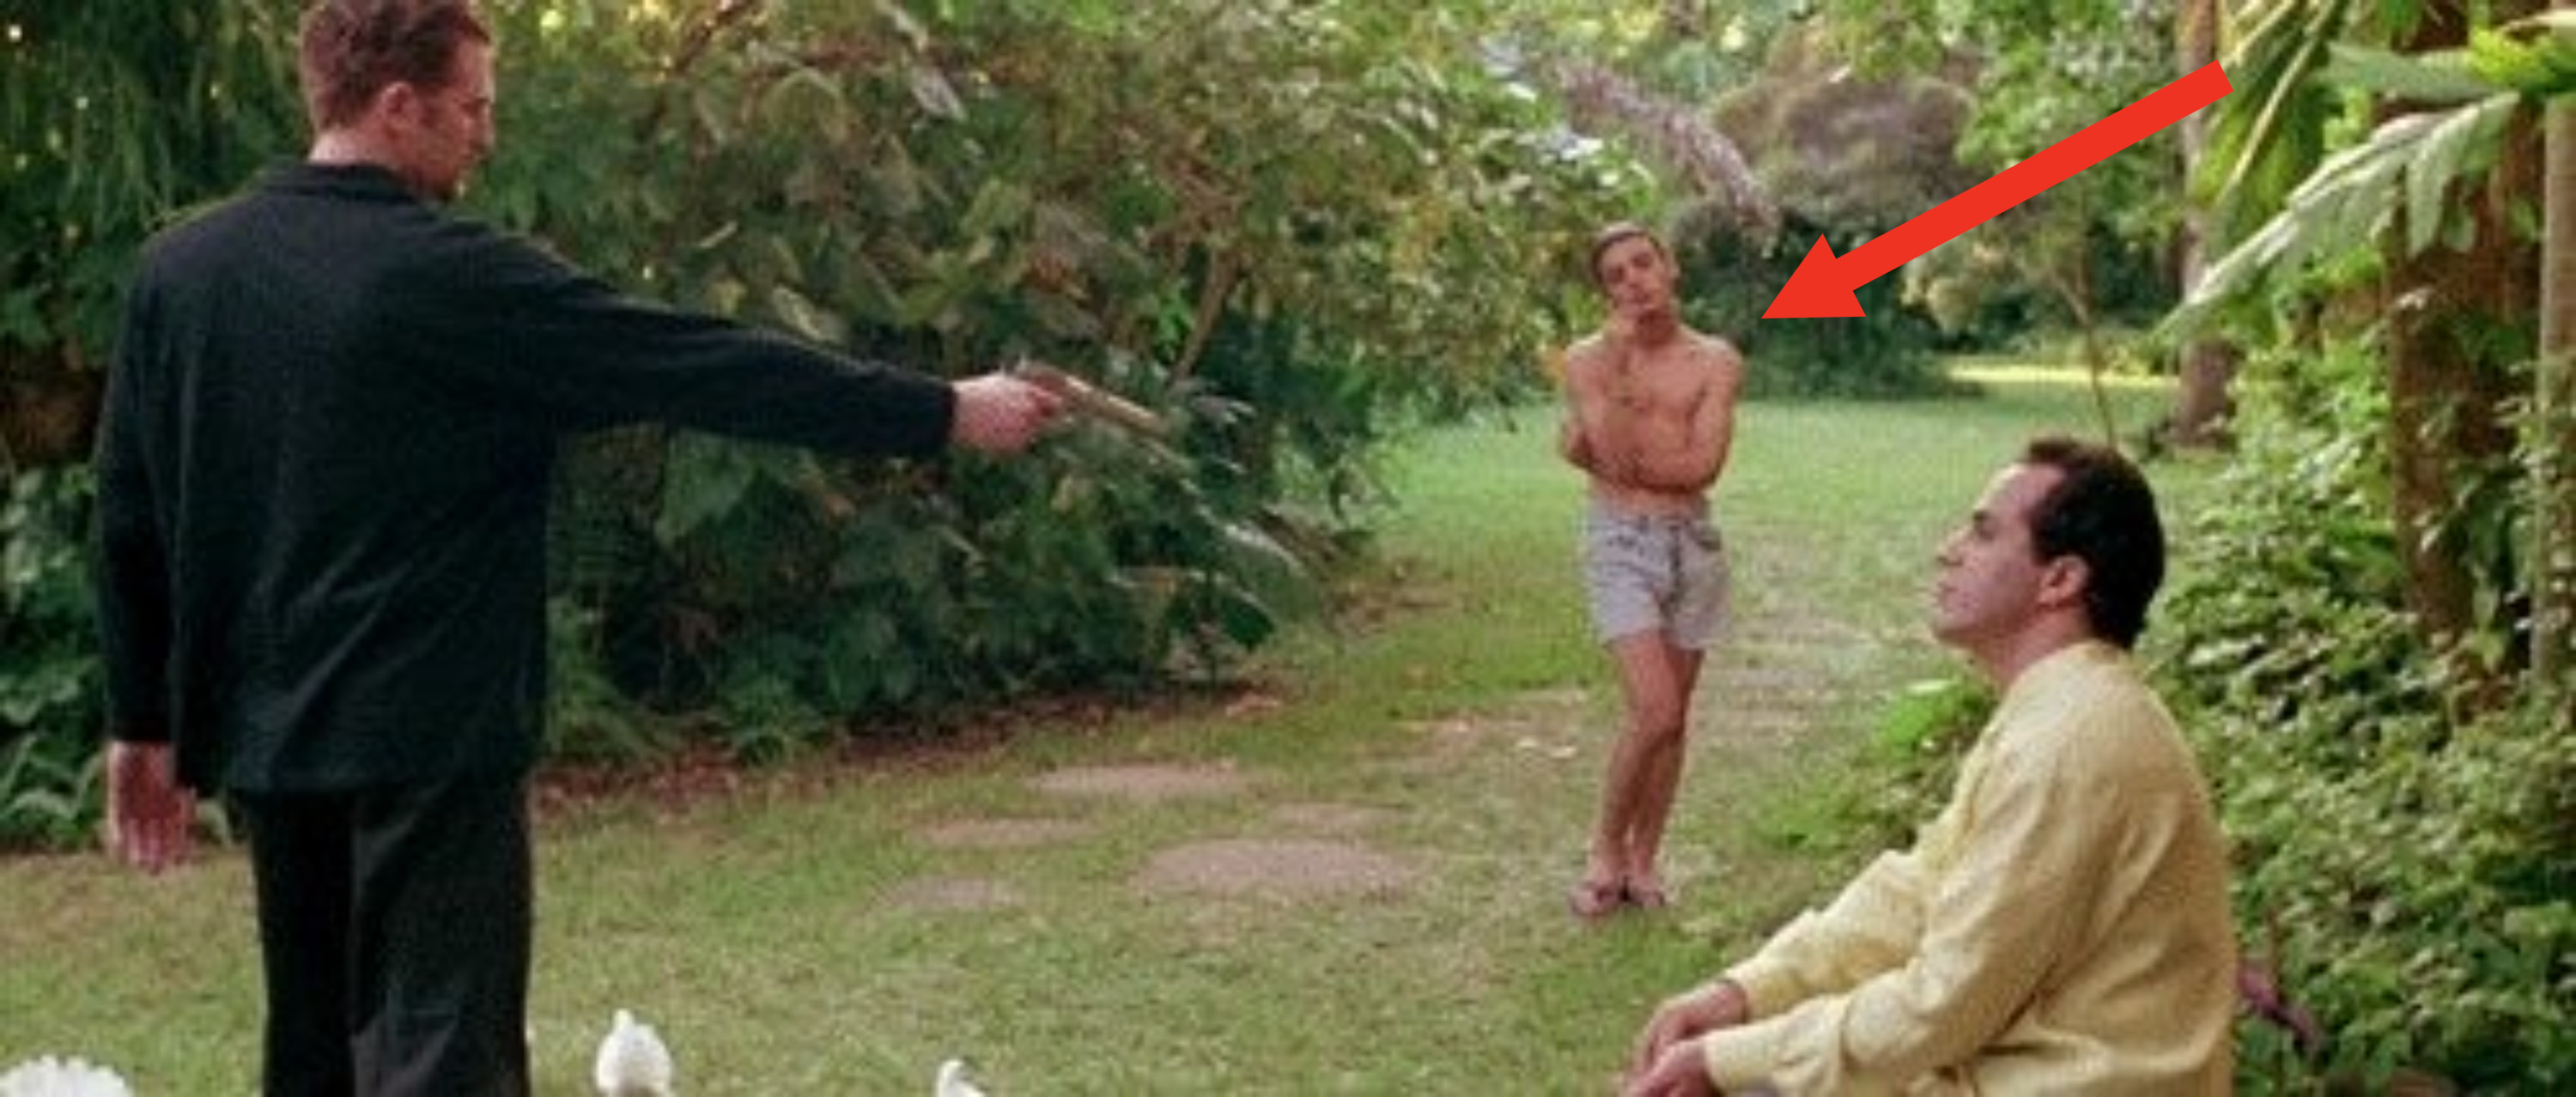 """Still from """"Illtown"""" with Oscar in the background shirtless and in jorts, Michael and Tony are on the left and right of him in the foreground, respectively"""